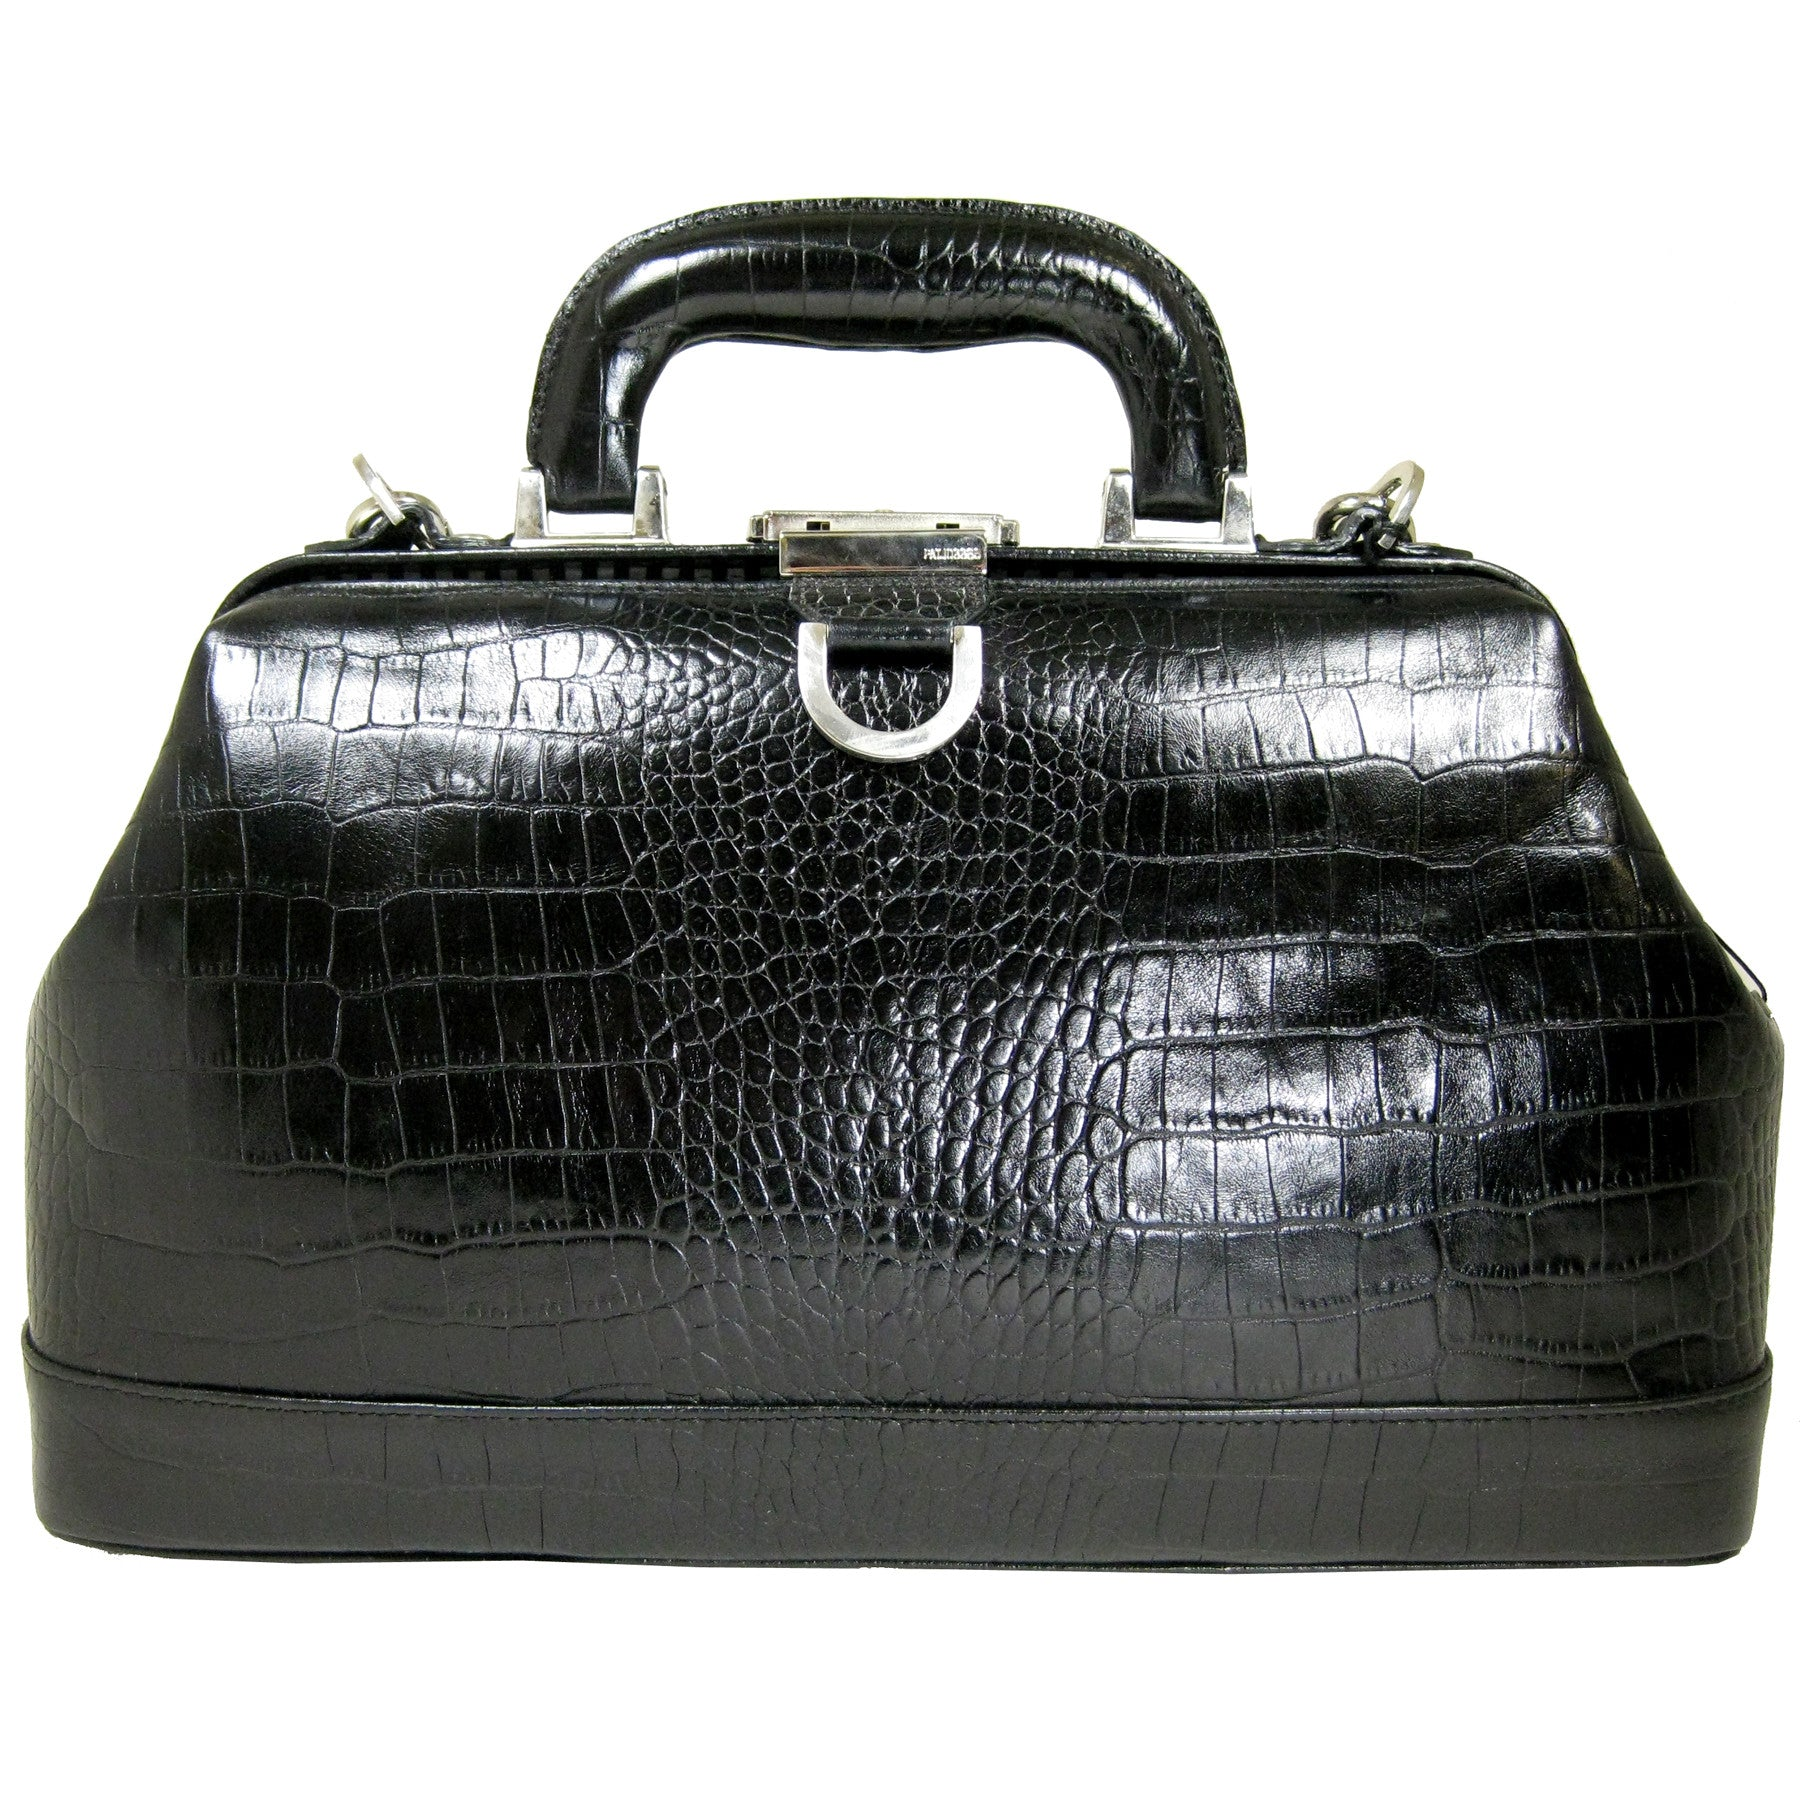 Alicia Klein leather doctor bag, black croco print